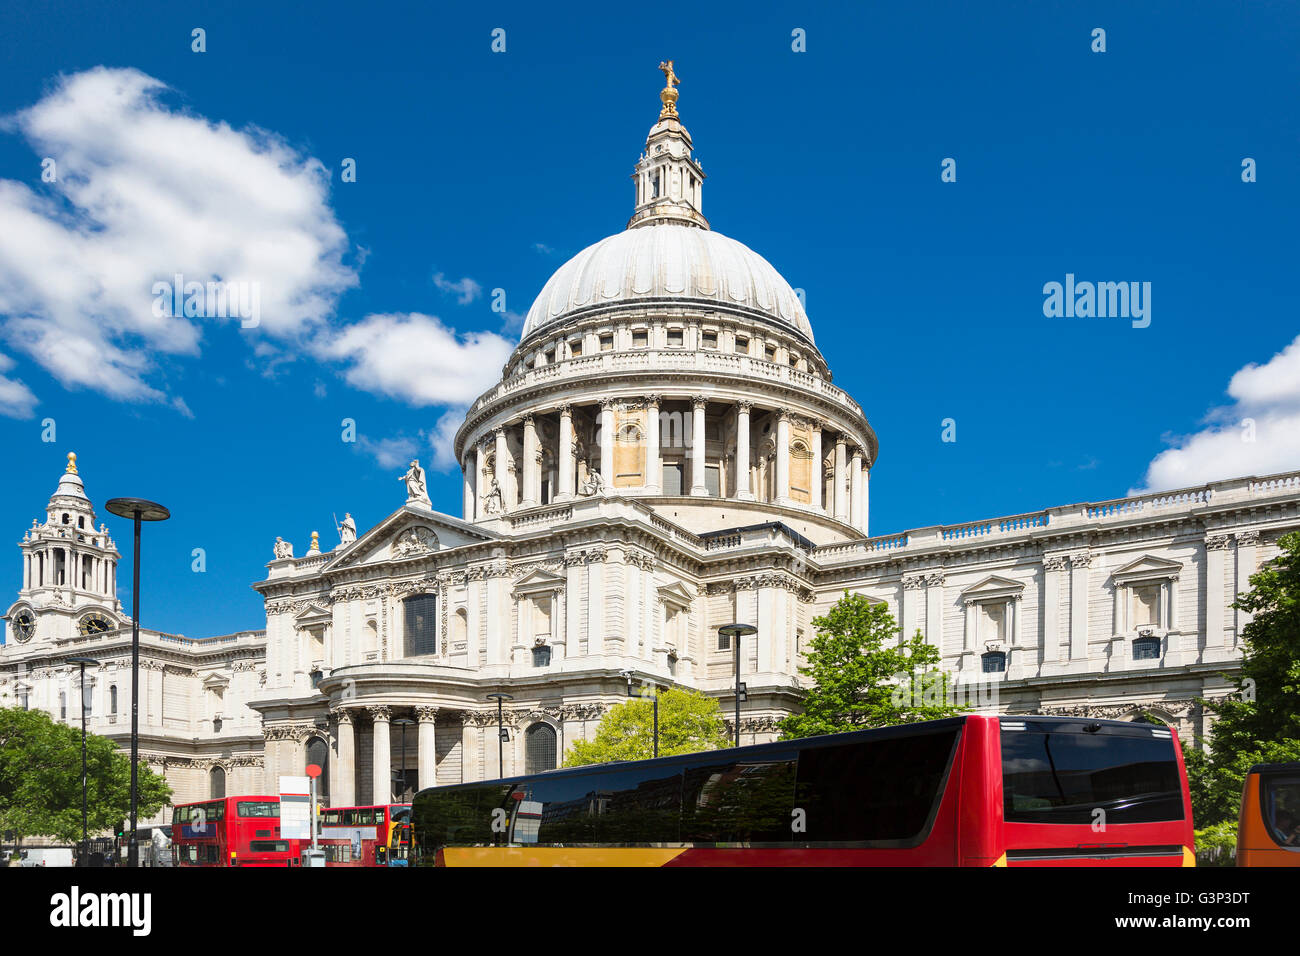 St Paul's Cathedral in London with red buses, with blue sky and white cloud Stock Photo